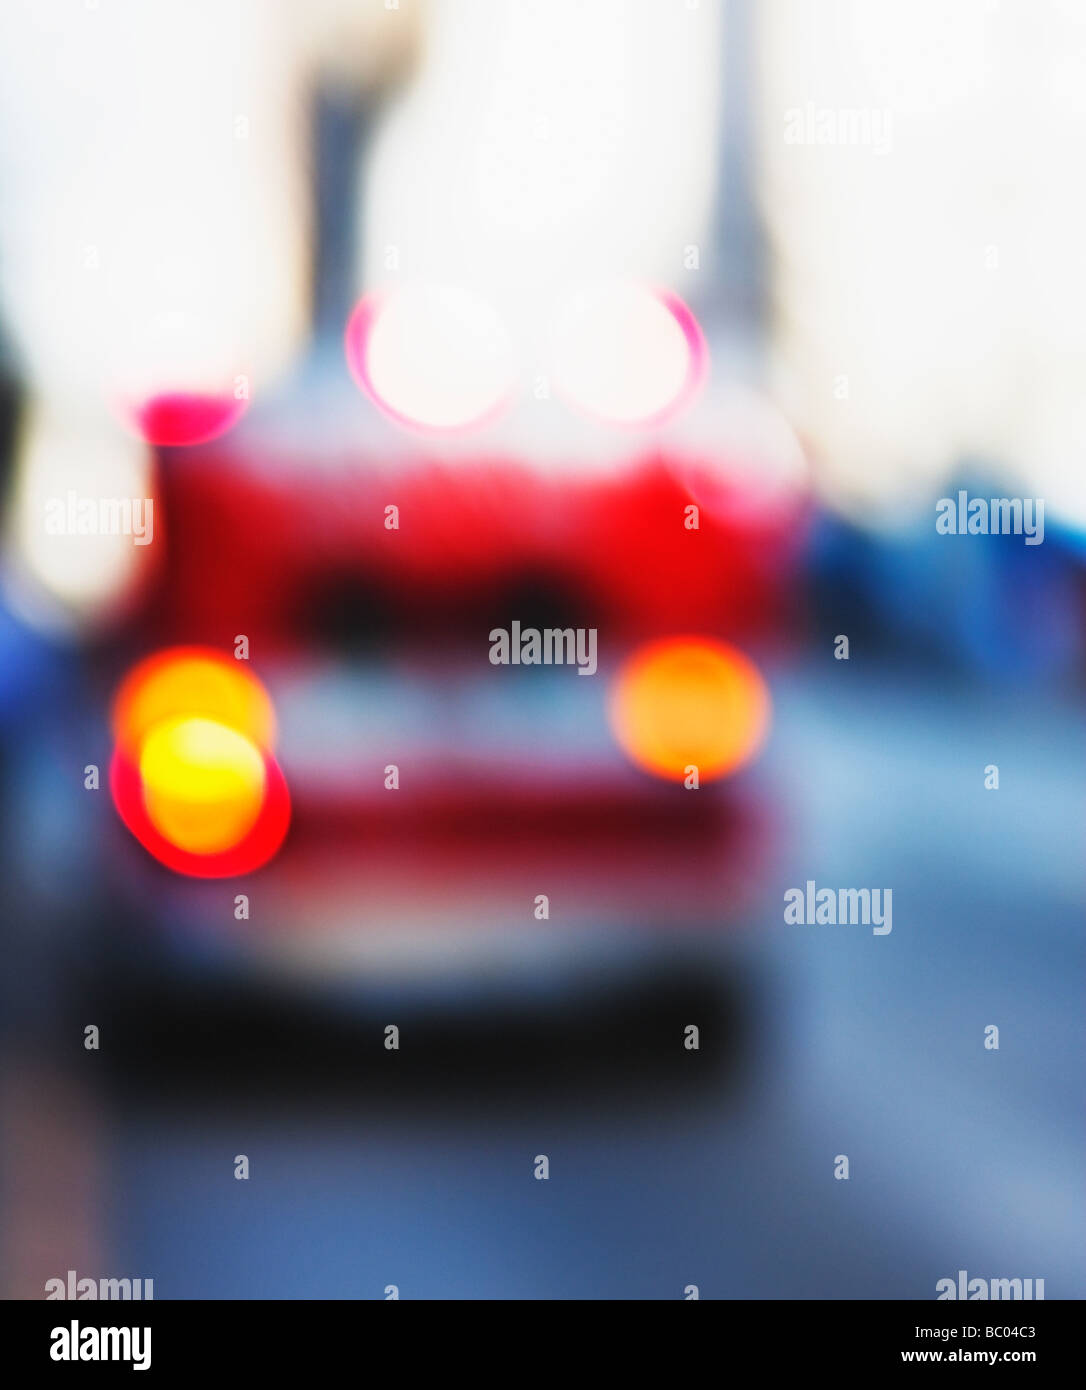 abstracted ambulance parked on street - Stock Image